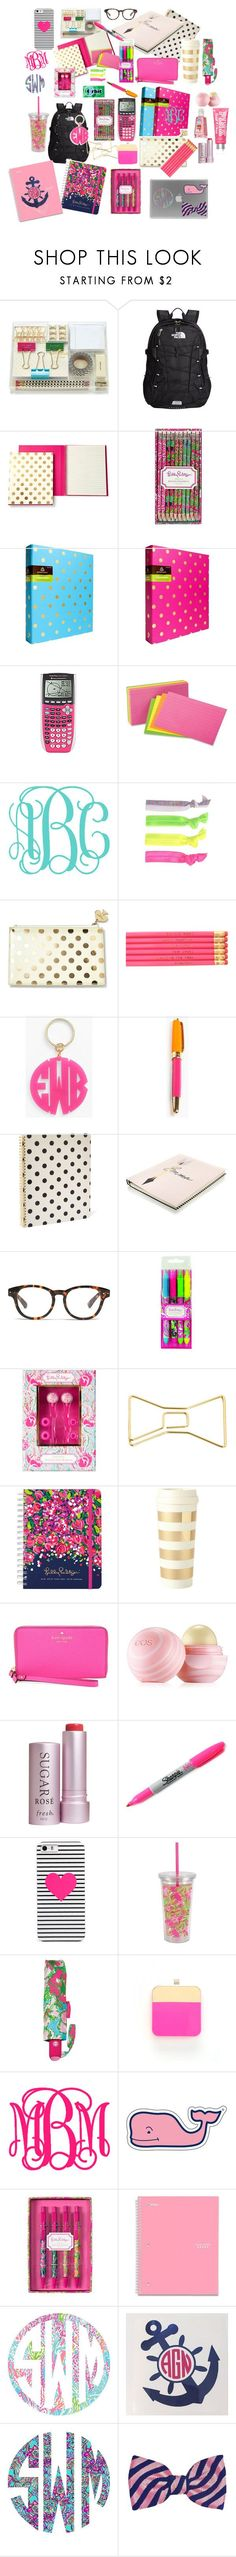 """Back to School Supplies Contest"" by lizguck ❤ liked on Polyvore featuring Amara, The North Face, Kate Spade, Lilly Pulitzer, Glam Bands, Moon and Lola, Madewell, Pink Vanilla, Eos and Fresh"